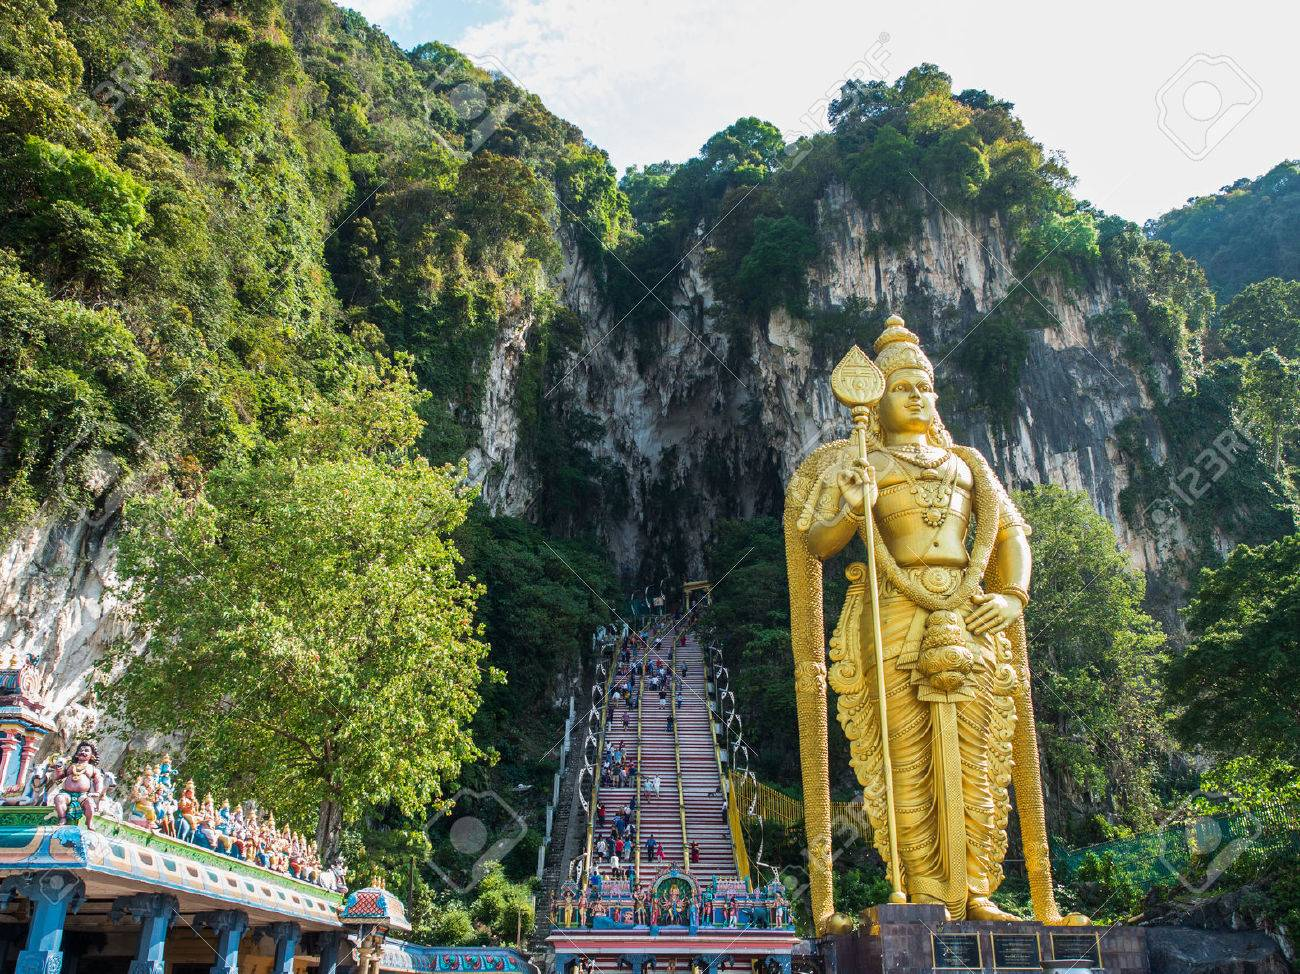 Tourist and Lord Murugan Statue in front the batu cave entrance - 61114619